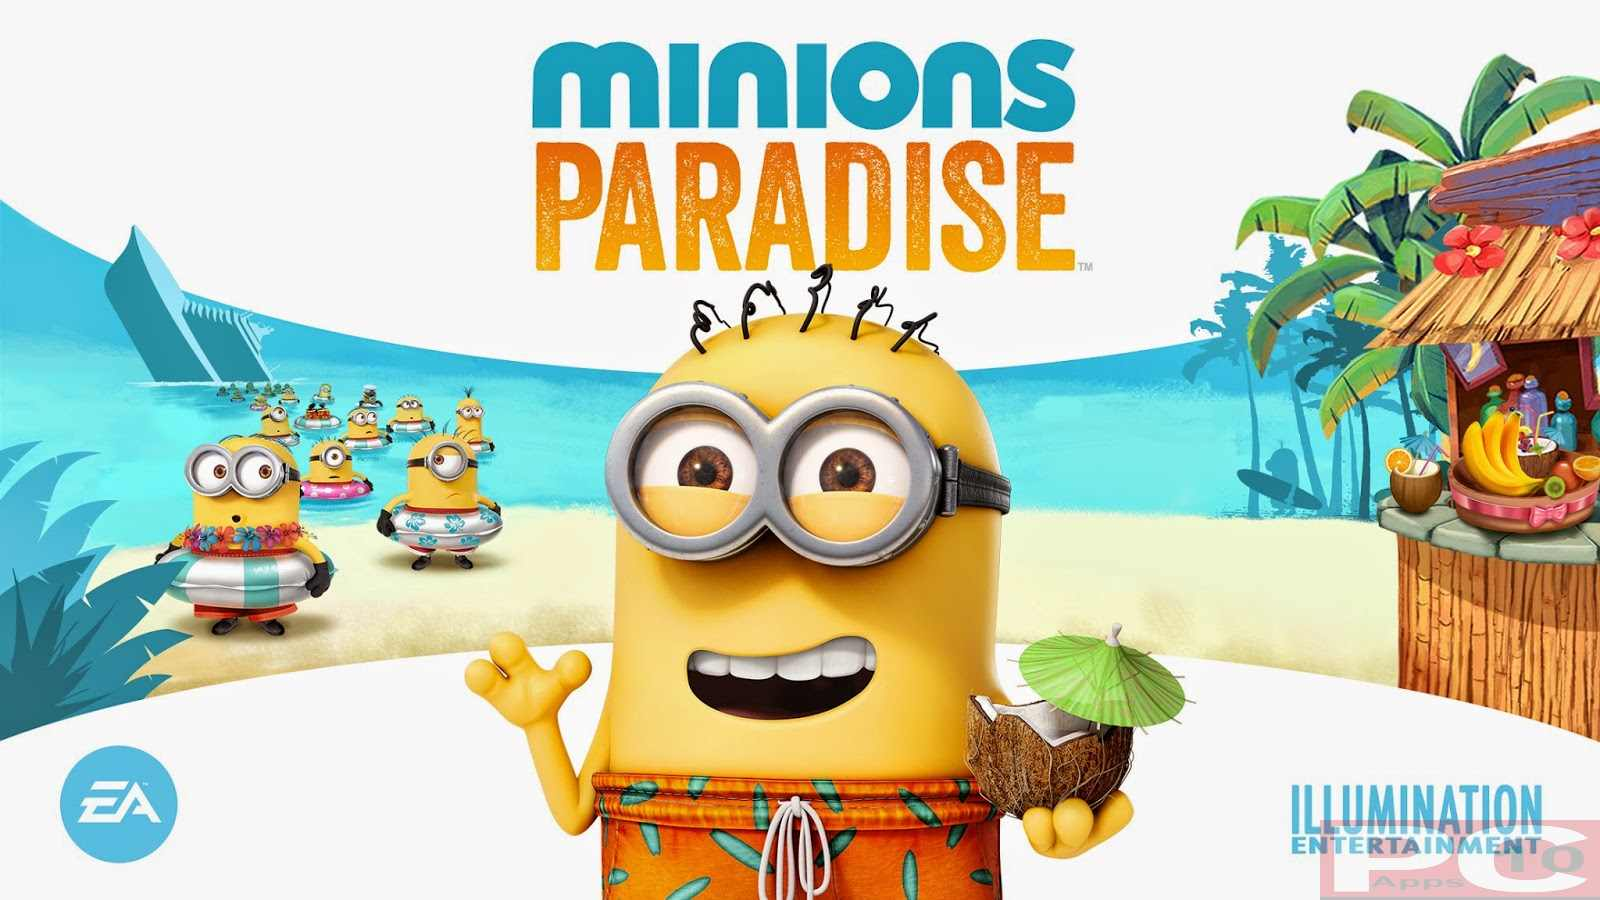 Minnions paradise for PC Windows (10/8/7) and MAC